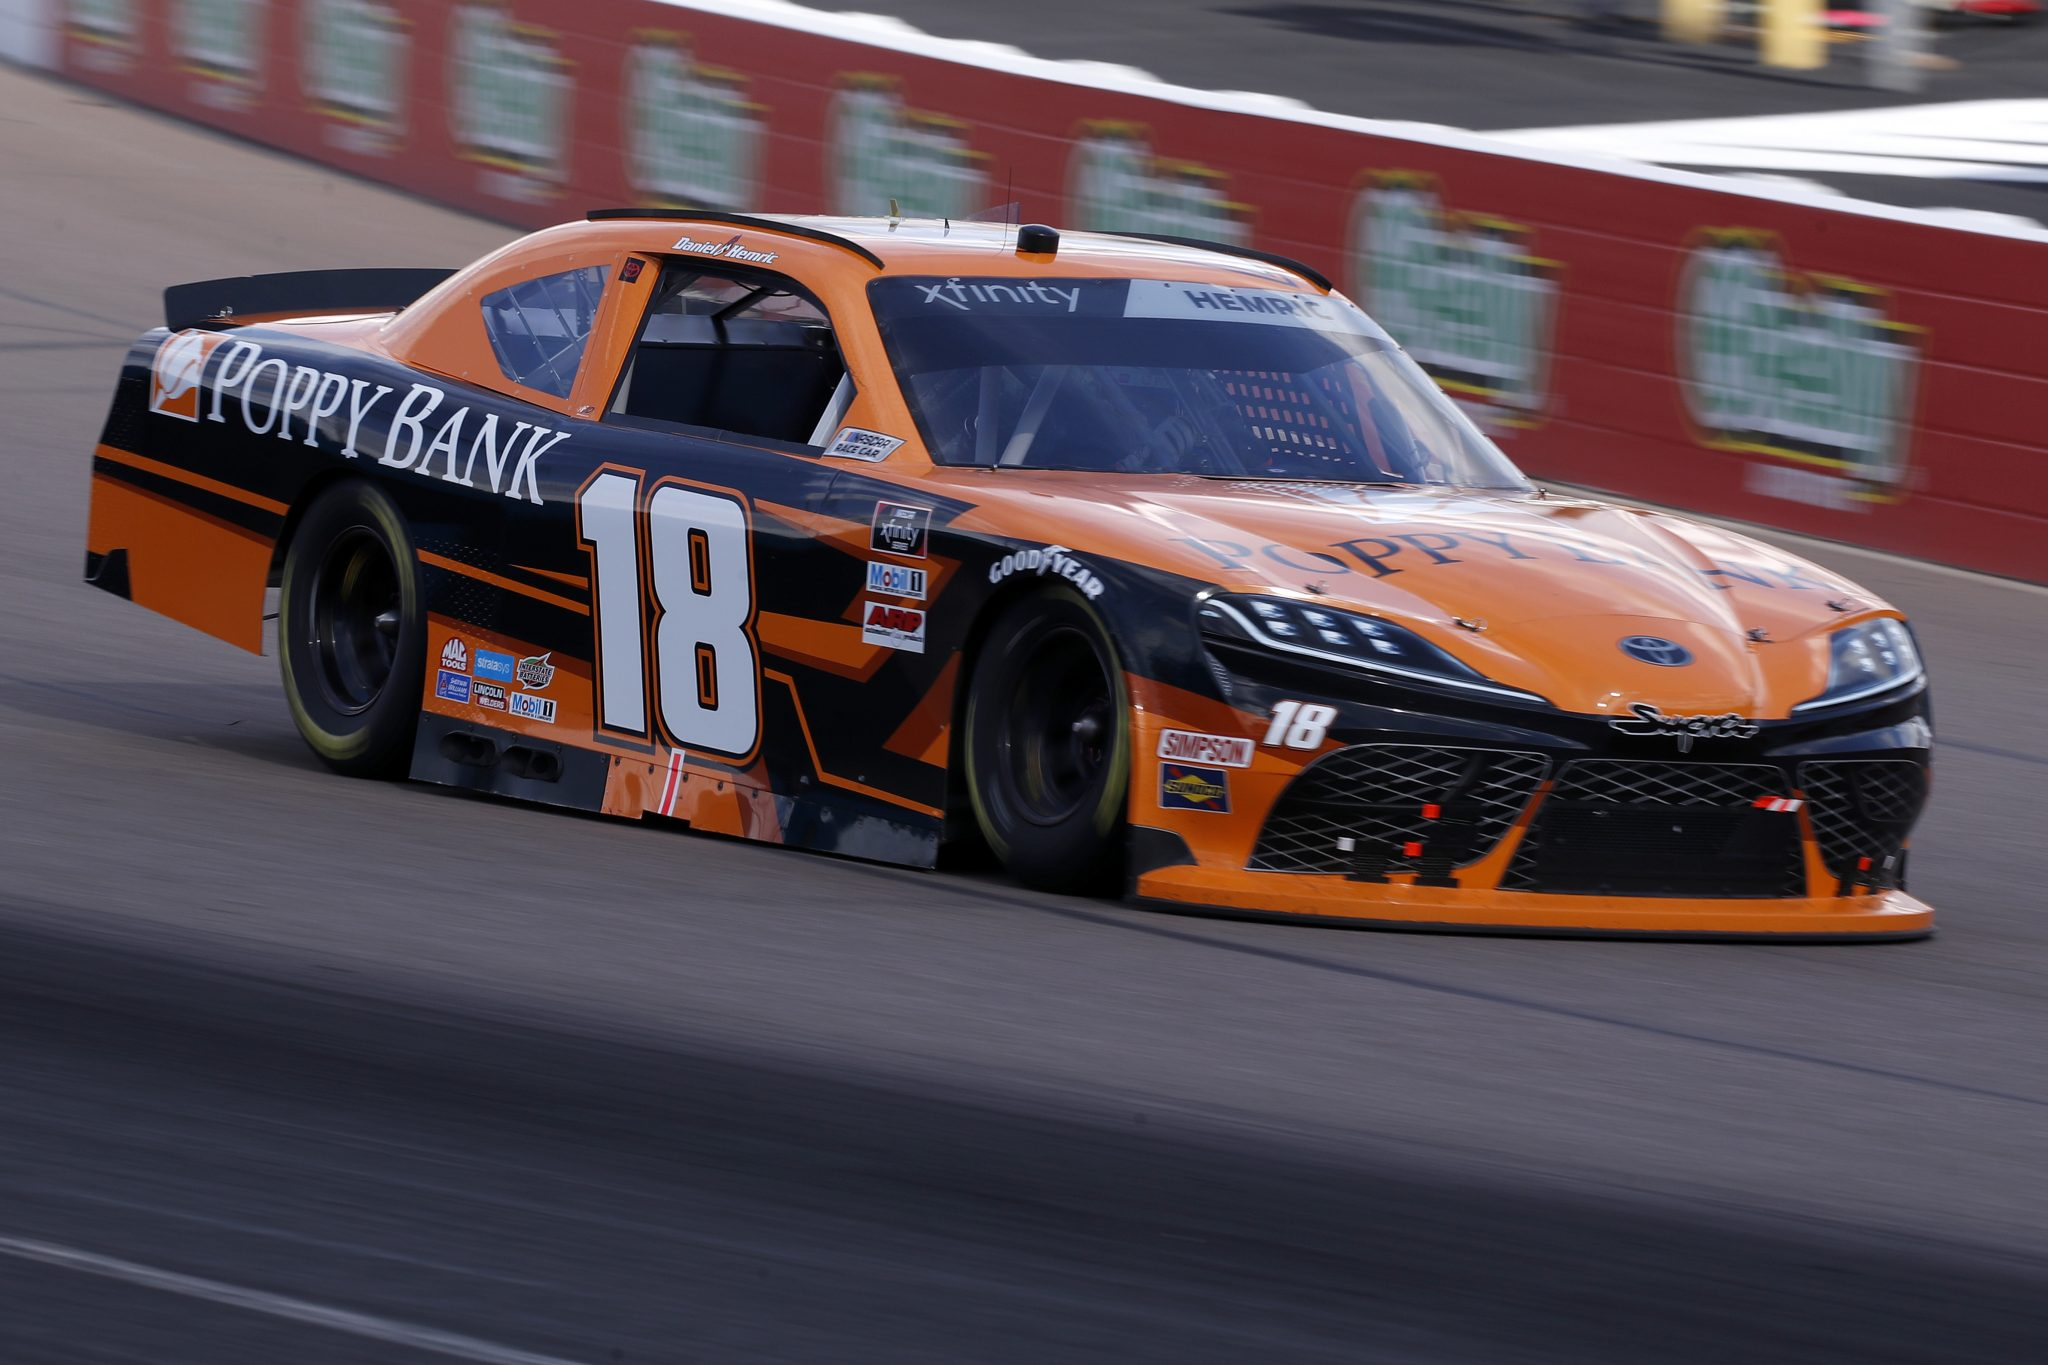 AVONDALE, ARIZONA - MARCH 13: Daniel Hemric, driver of the #18 Poppy Bank Toyota, drives the NASCAR Xfinity Series Call 811 Before You Dig 200 presented by Arizona 811 at Phoenix Raceway on March 13, 2021 in Avondale, Arizona. (Photo by Christian Petersen/Getty Images) | Getty Images